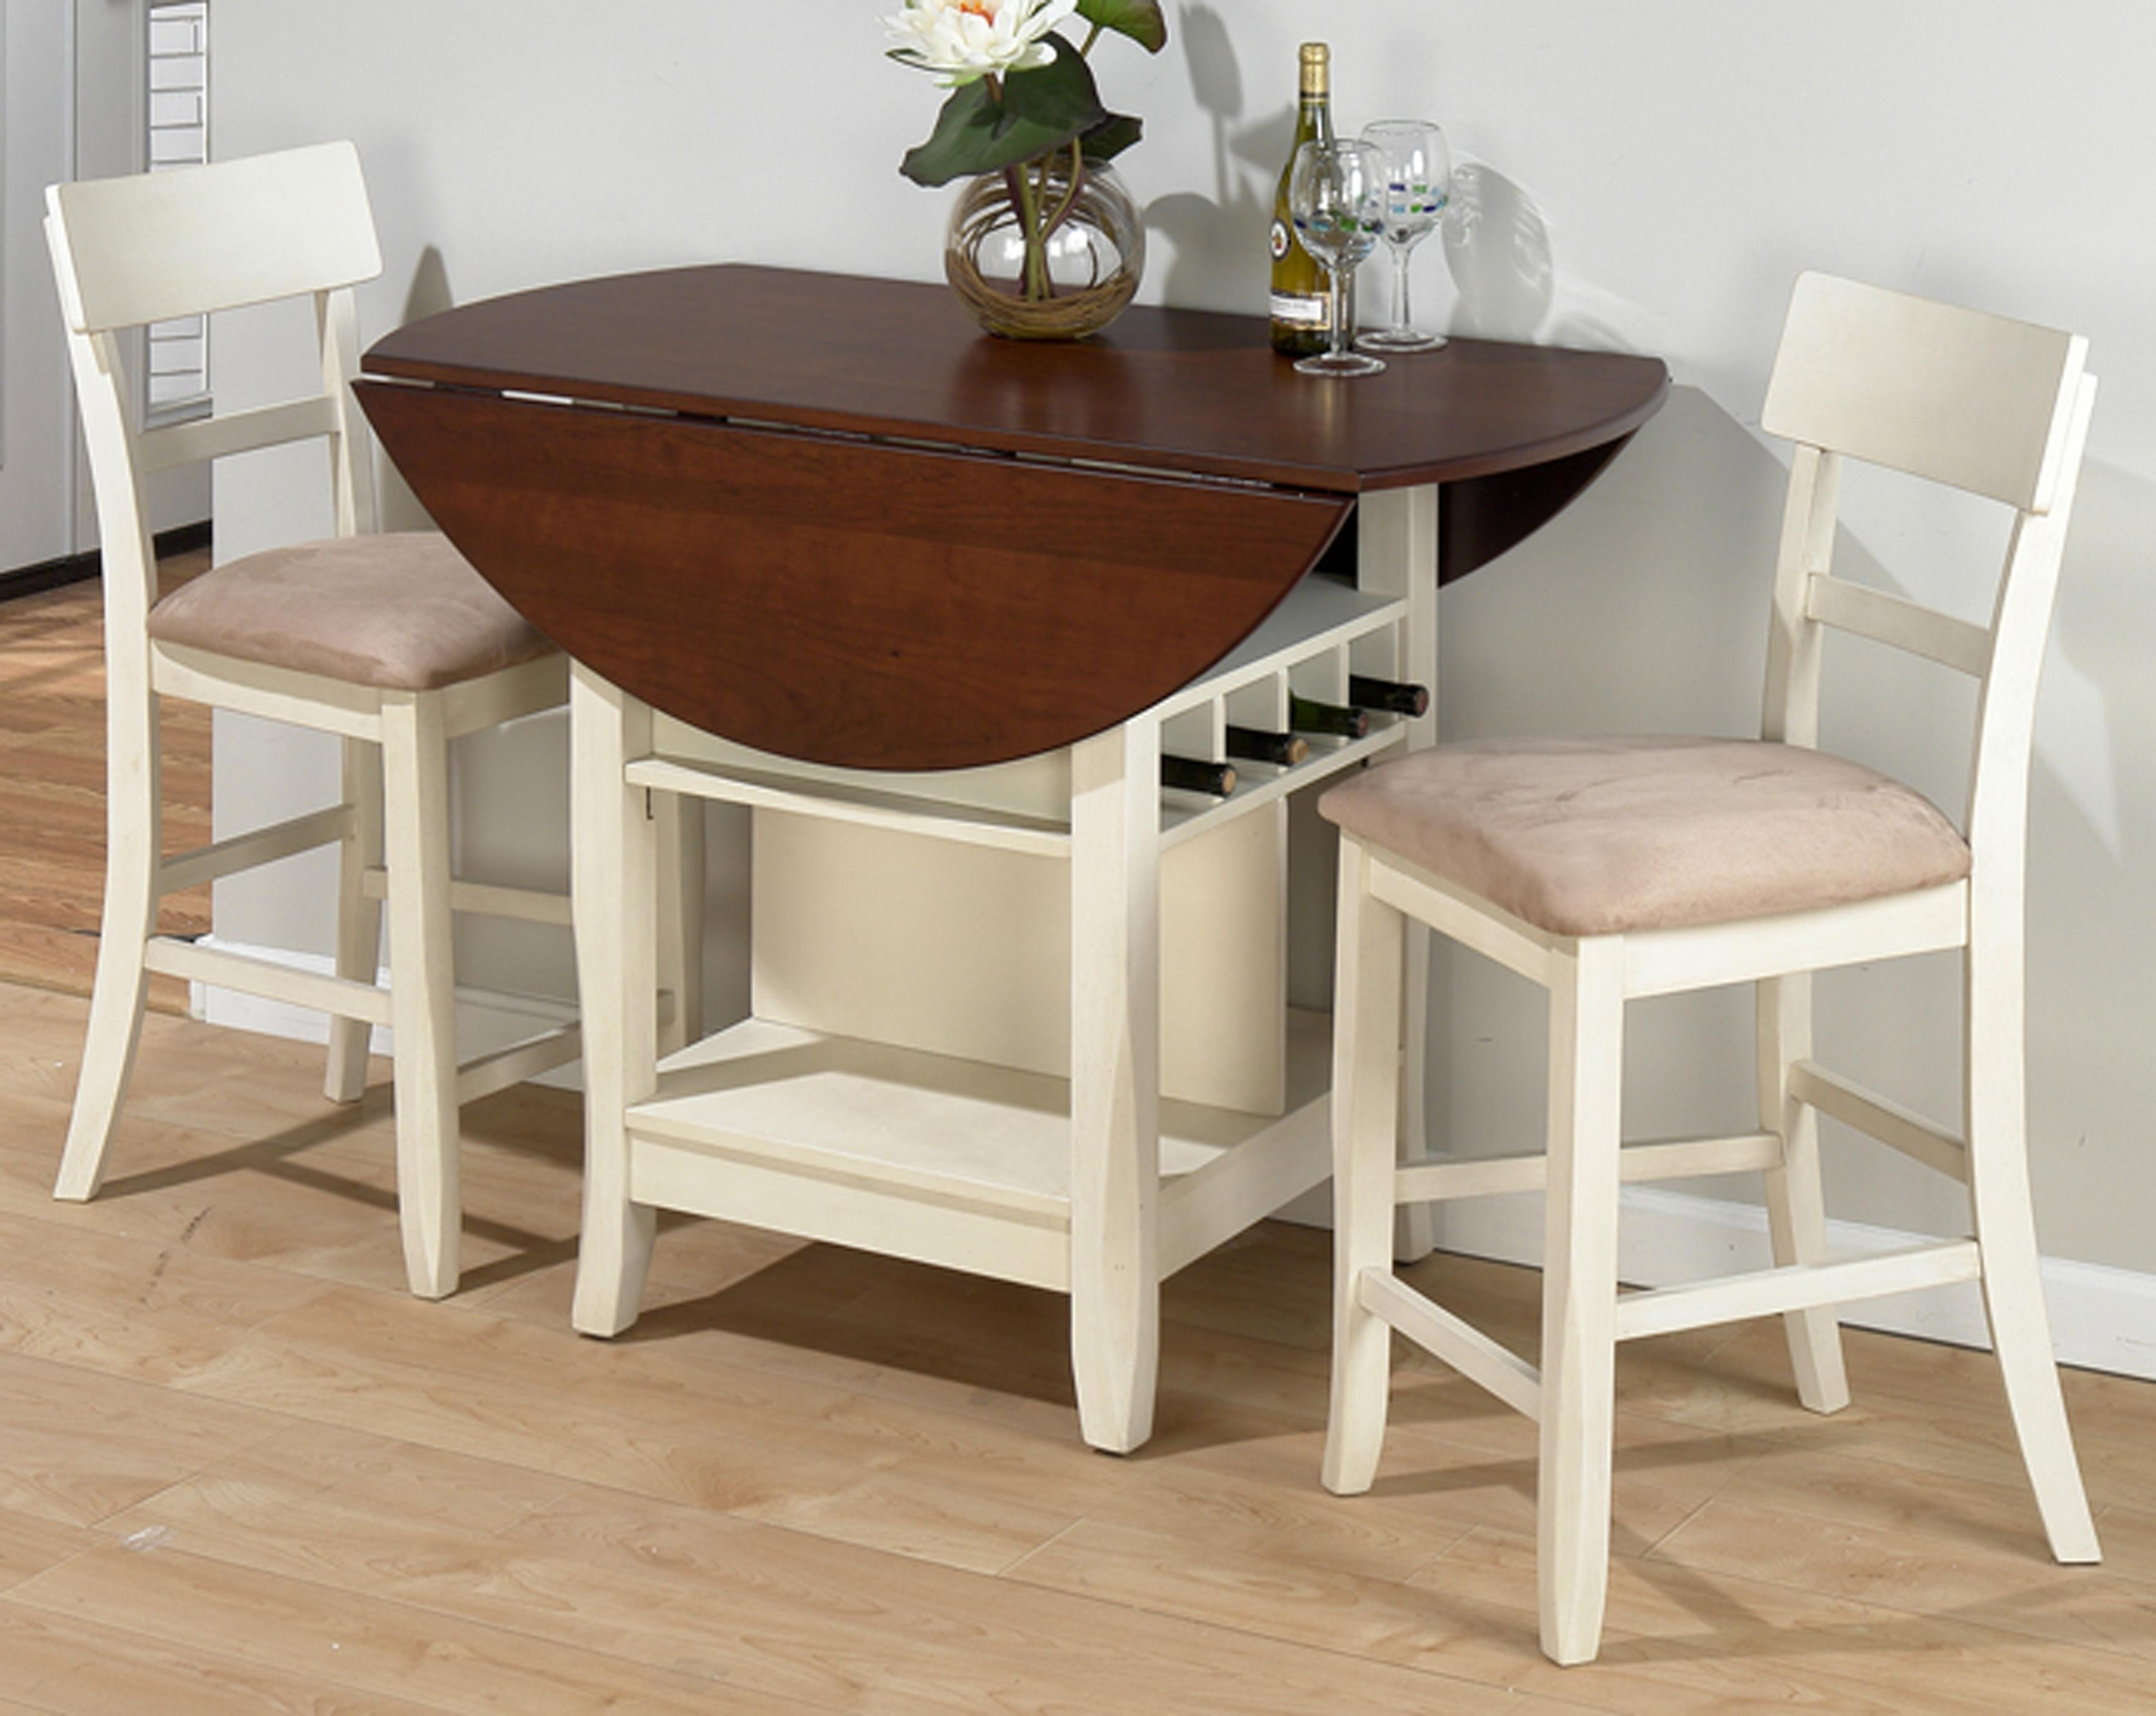 expandable dining table for small spaces ... home design : dining tables small spaces expandable lovely FZXKEBQ